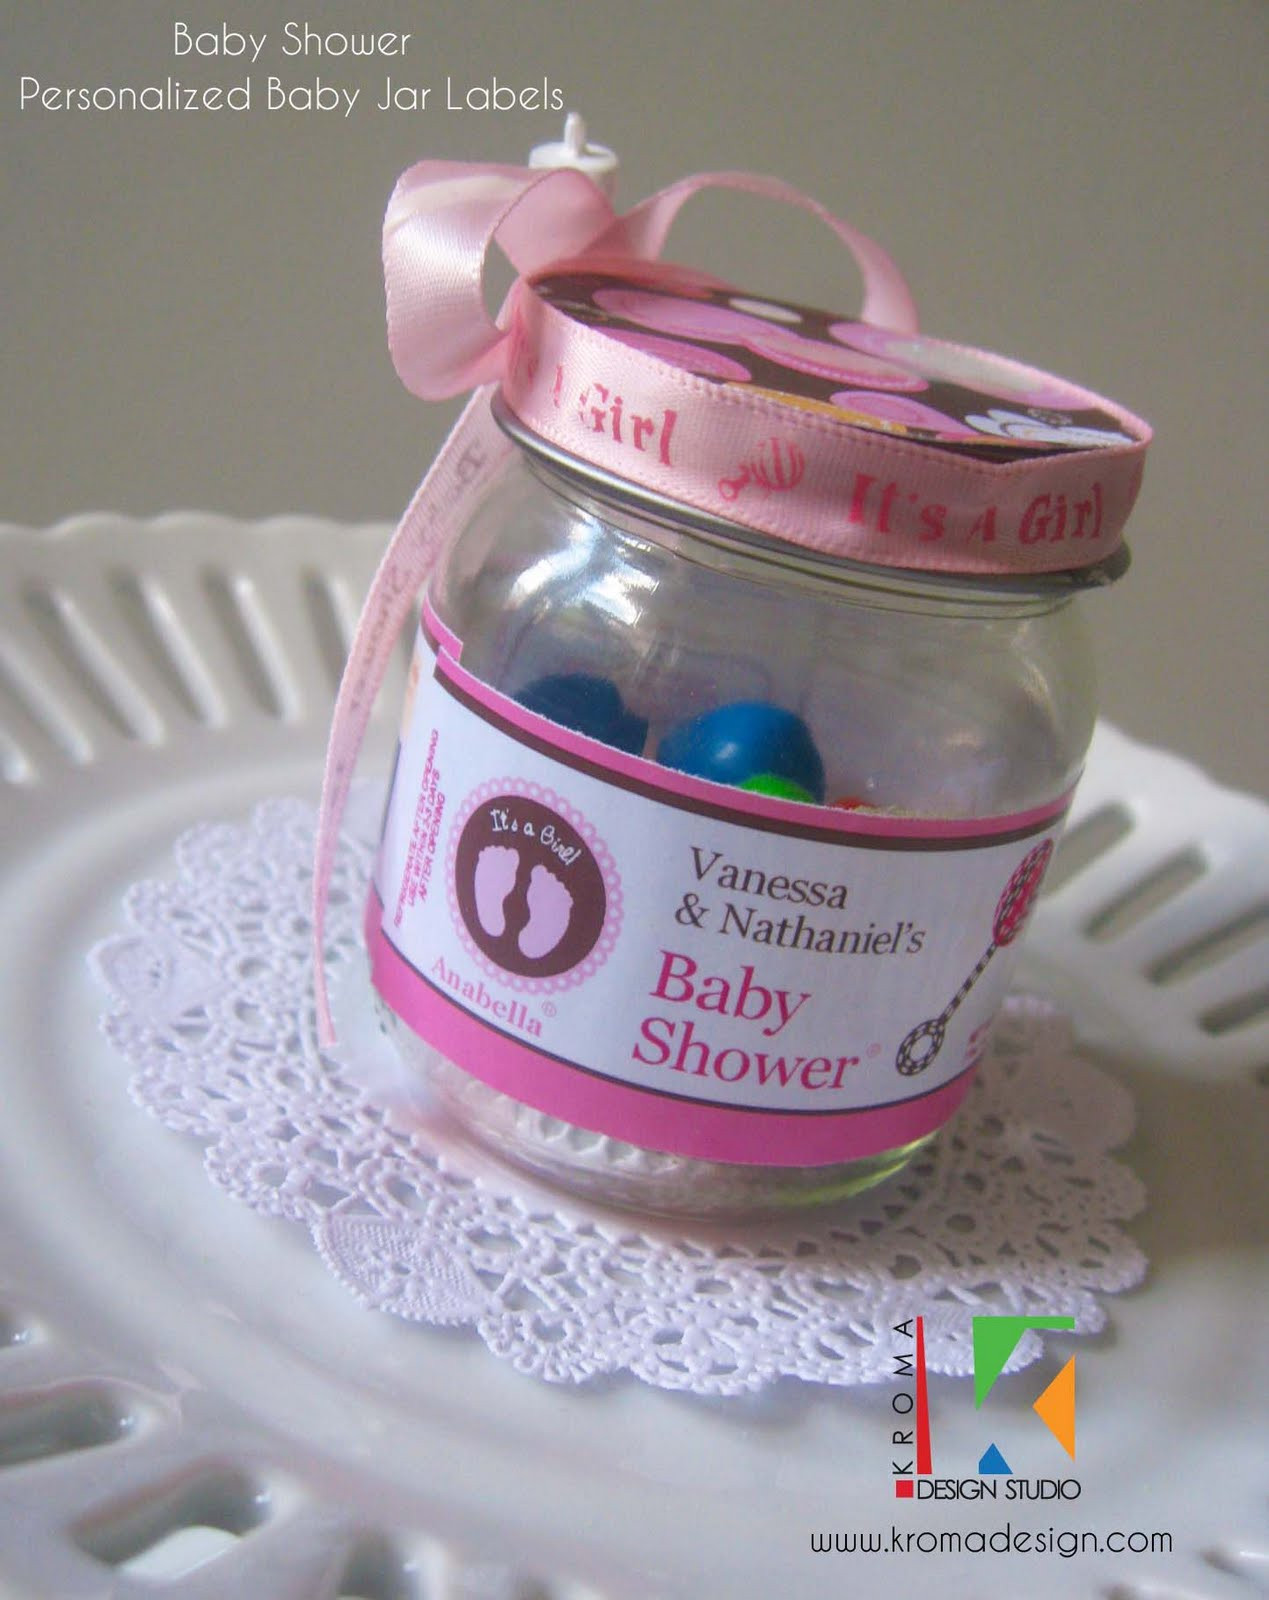 Best ideas about DIY Baby Shower Favors For Girl . Save or Pin Baby Showers DIY Printable Baby Jar Label Favors for Now.